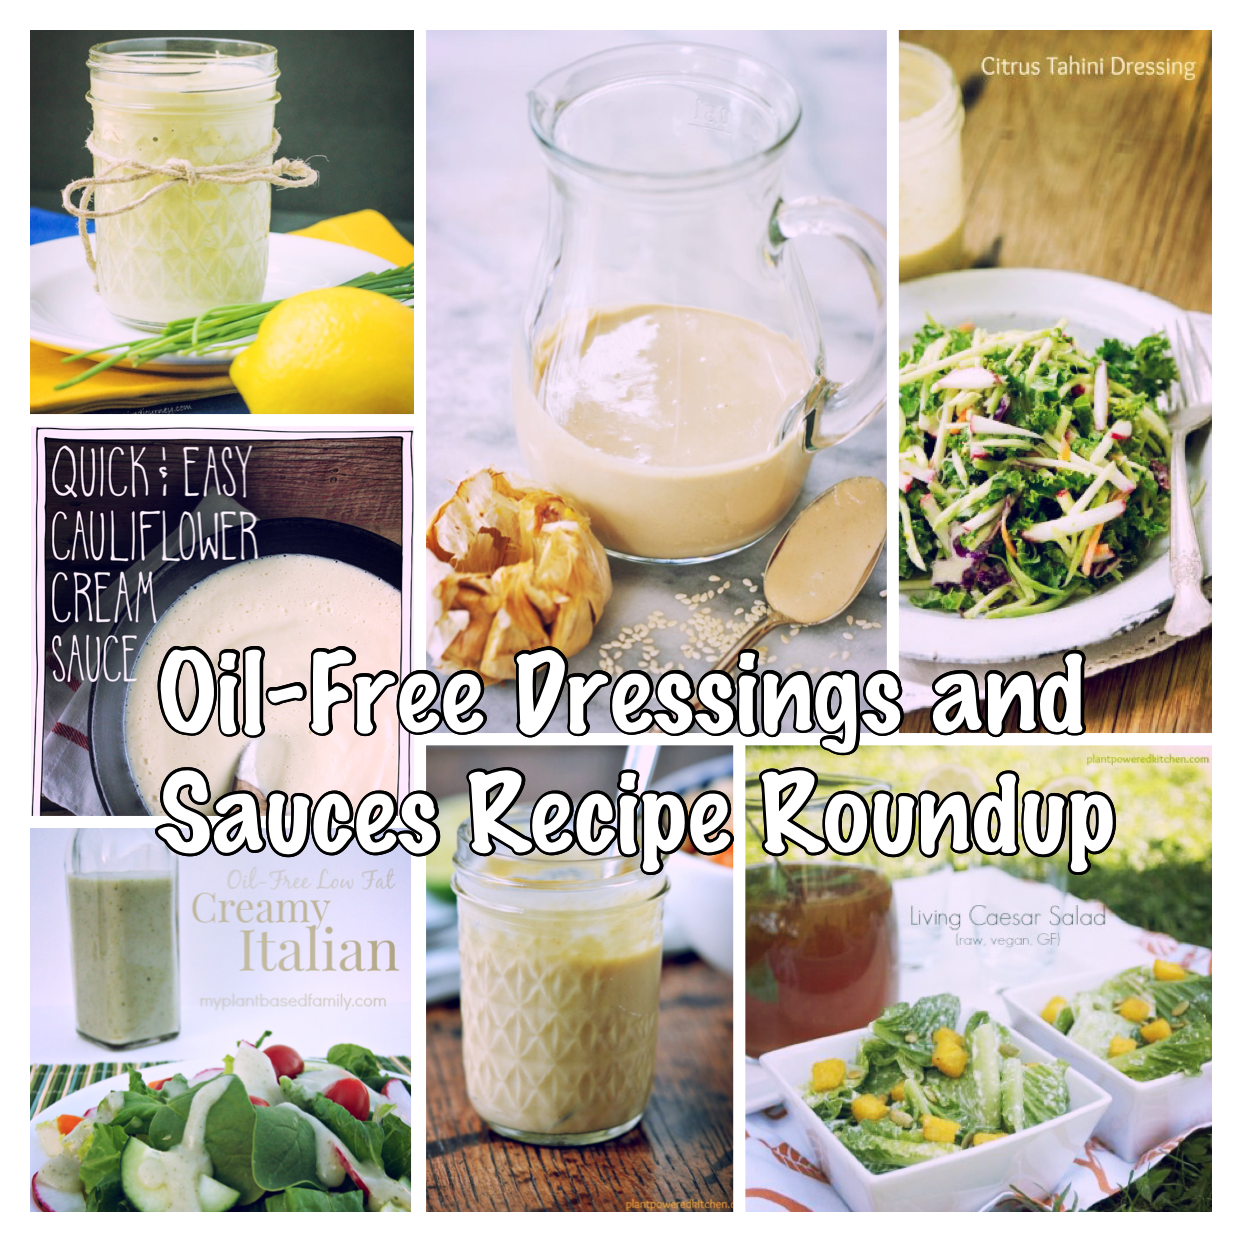 Dressings and Sauces